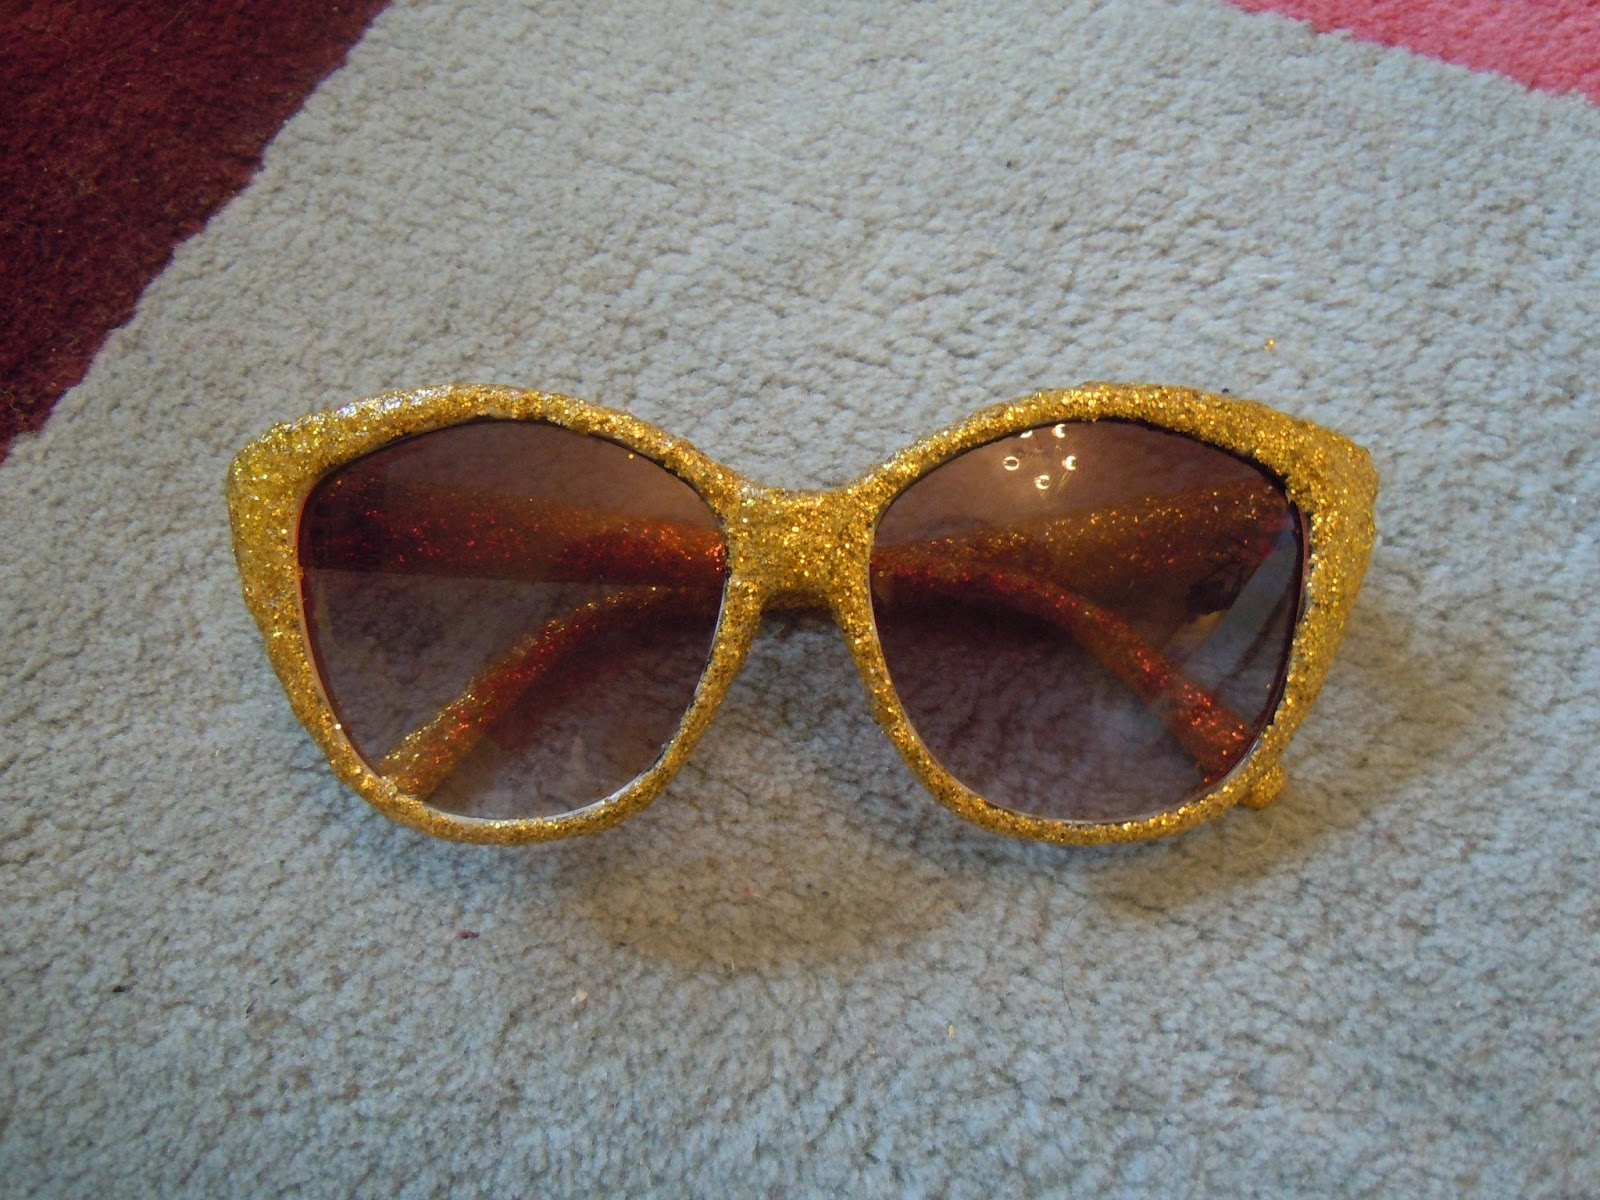 d2b92c5fcdd8 And there you have your own pair of Miu Miu inspired sunglasses for under  £15! I m already counting down the days until summer.